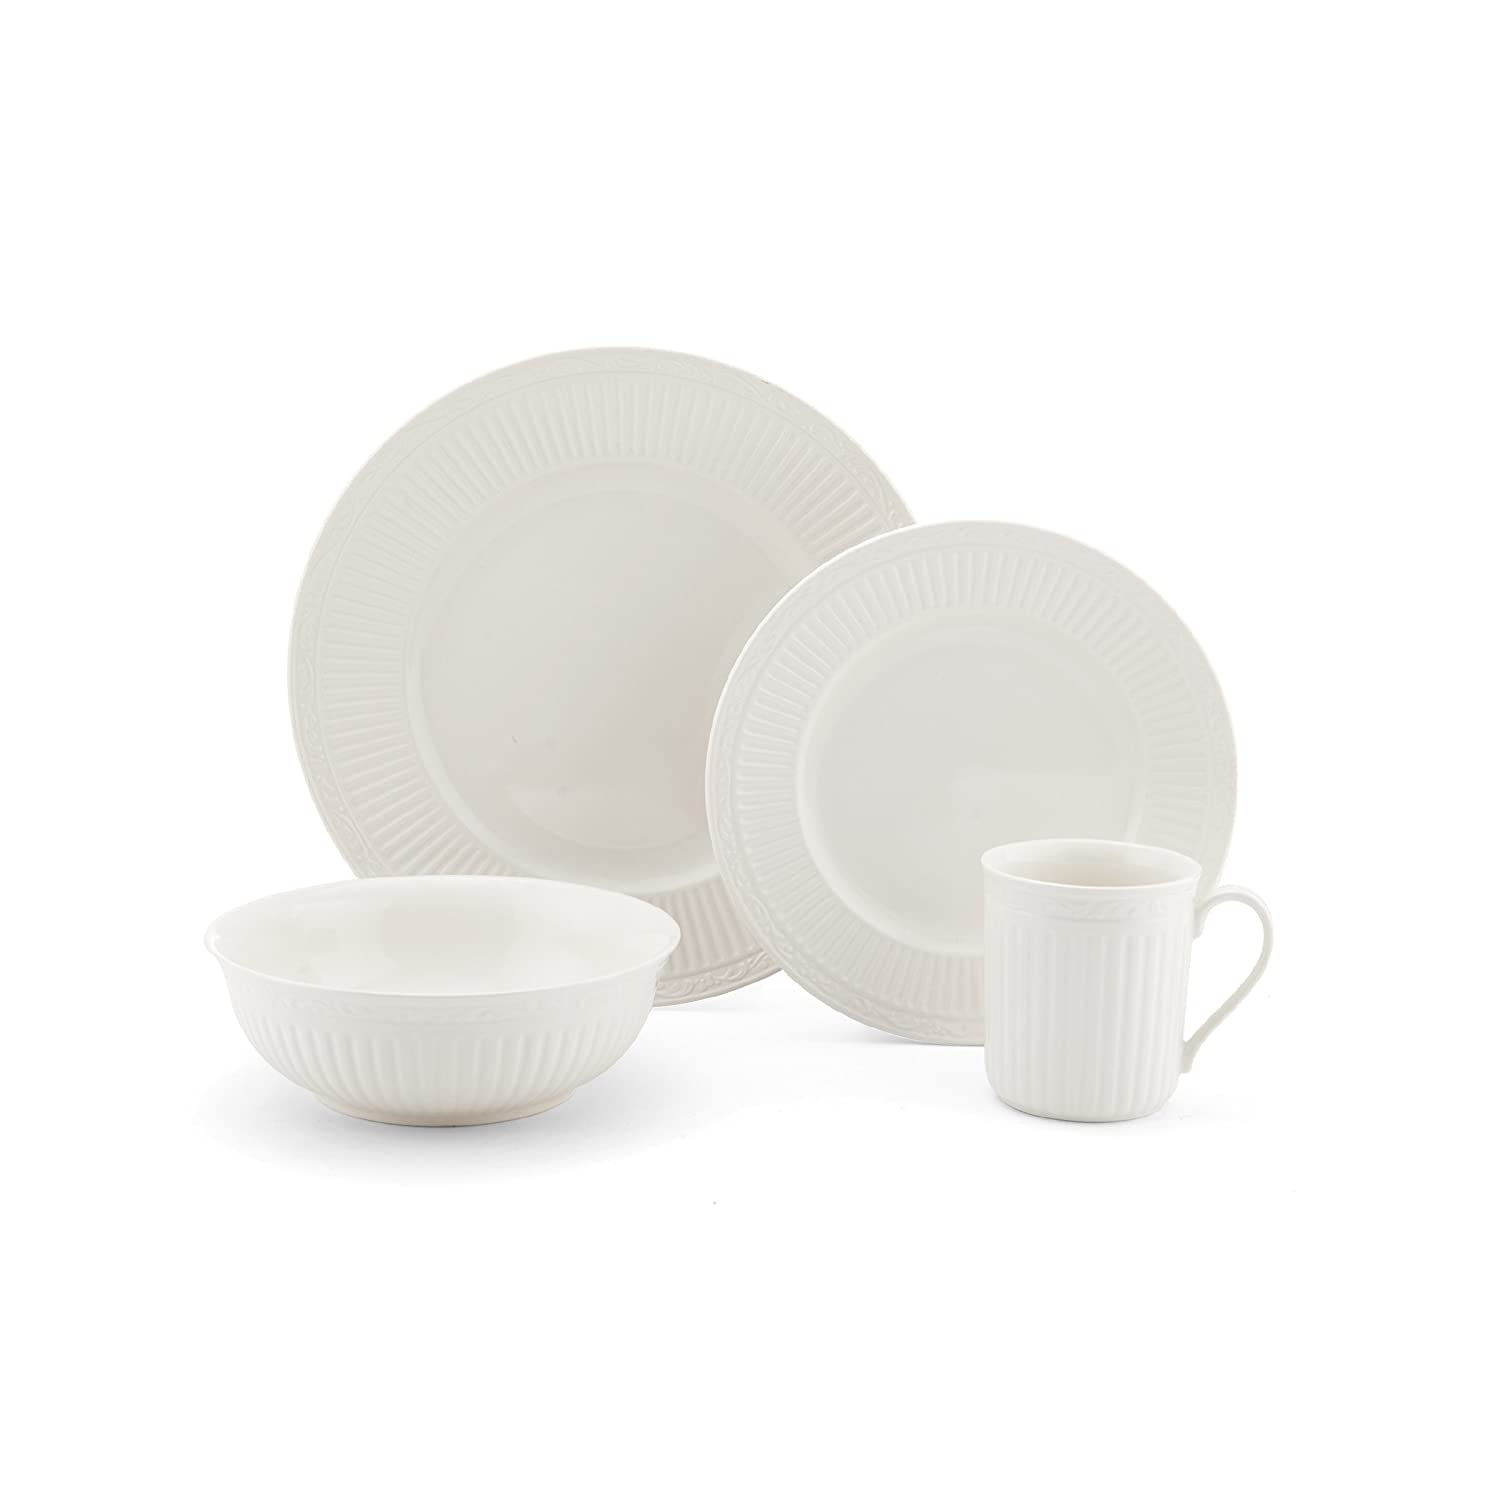 Mikasa Italian Countryside 4-Piece Place Setting, Service for 1 5160764